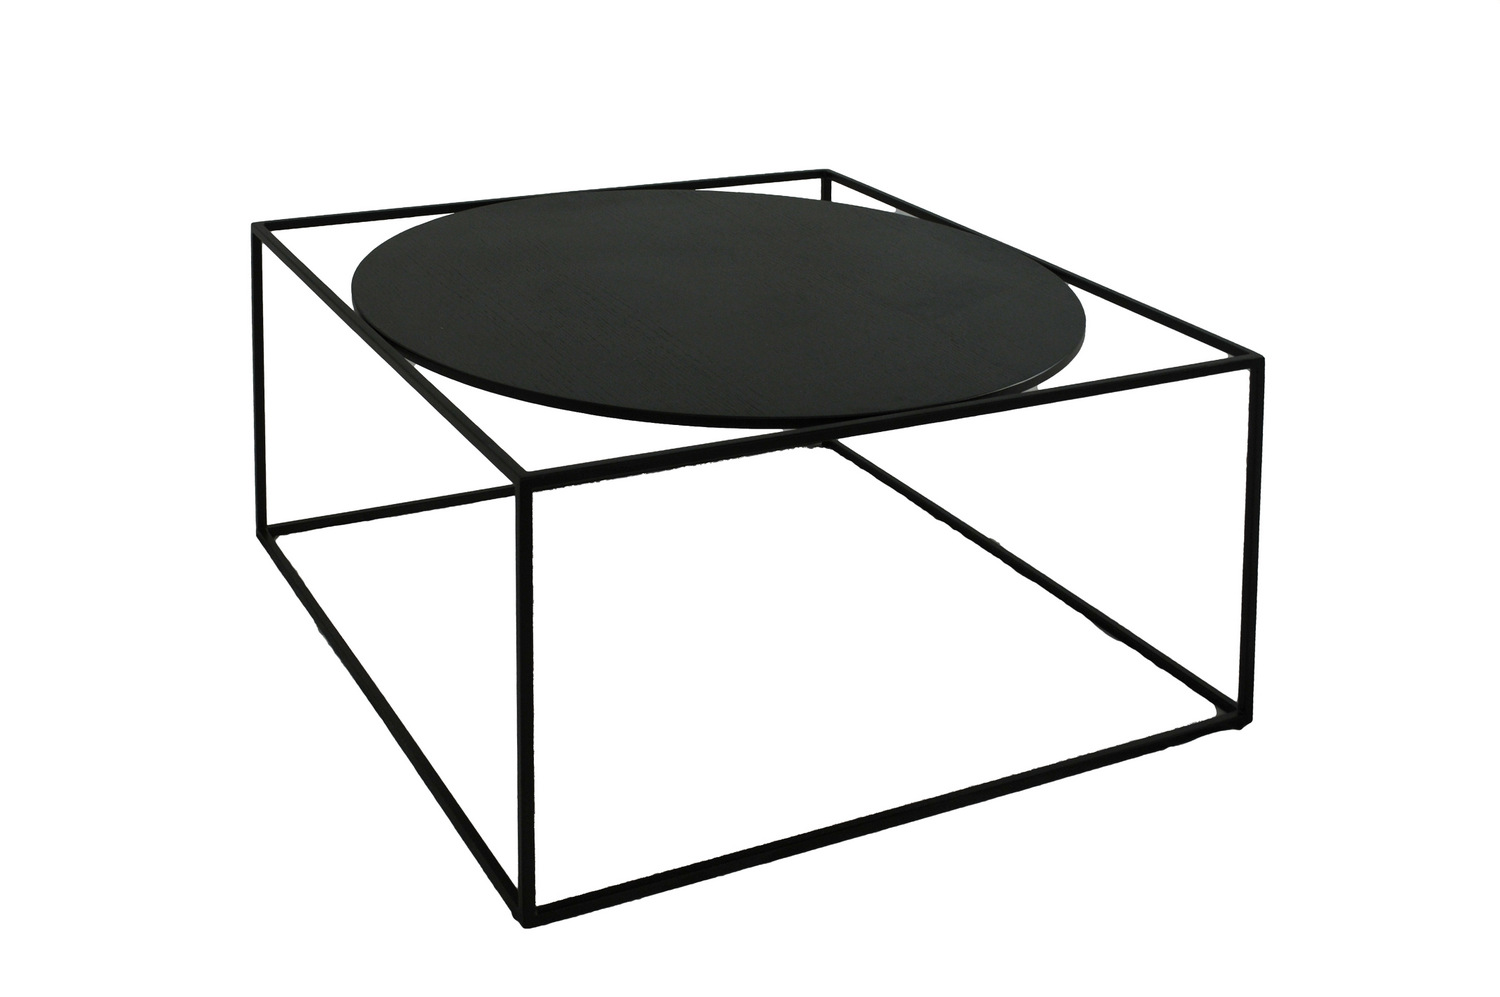 G3 wooden coffee table by roche bobois design johan lindst n - Table basse verre roche bobois ...